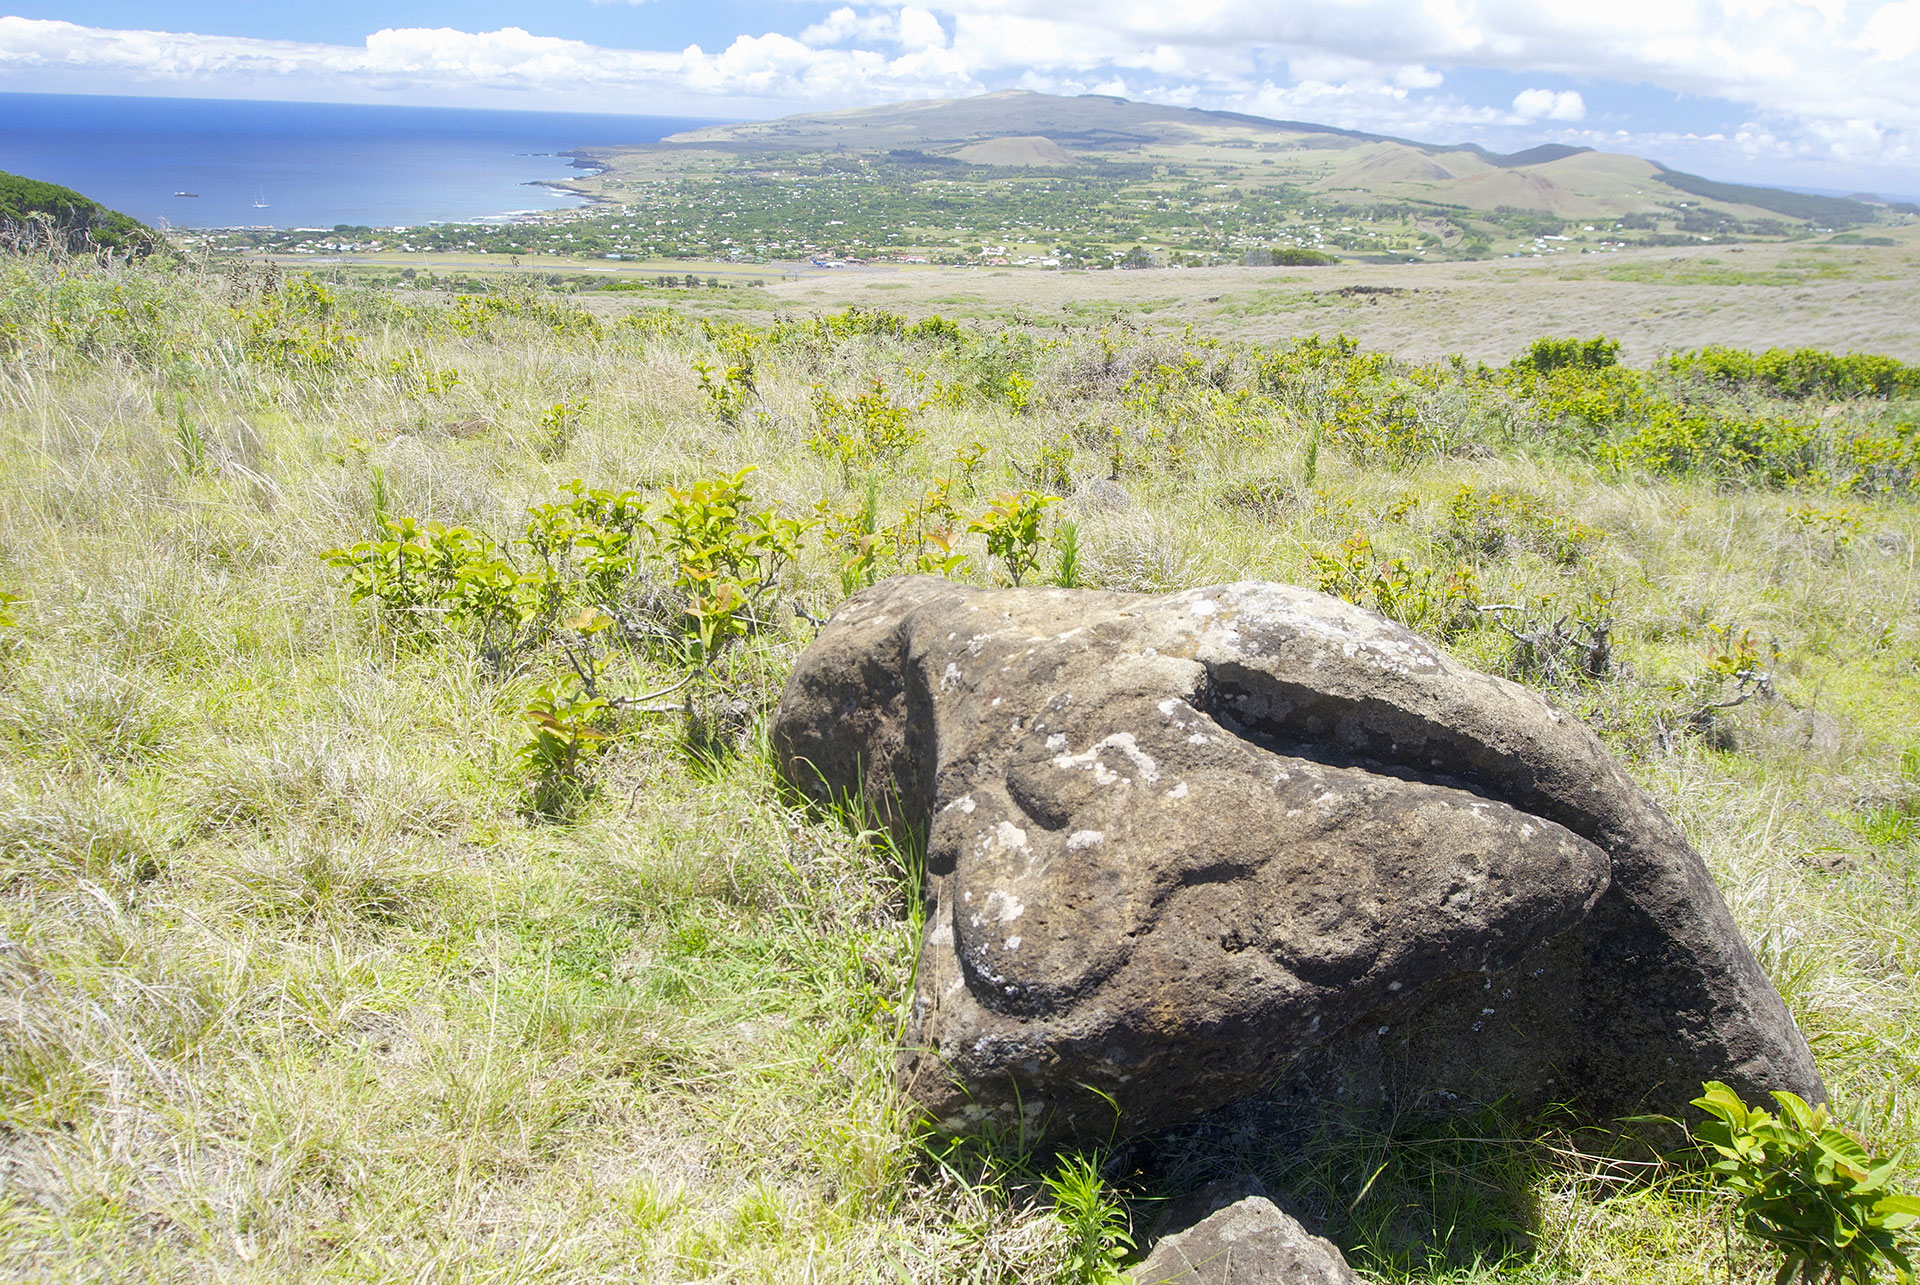 Picture of the Easter Island landscape showing an embossed petroglyph, Rapa Nui site, Chile